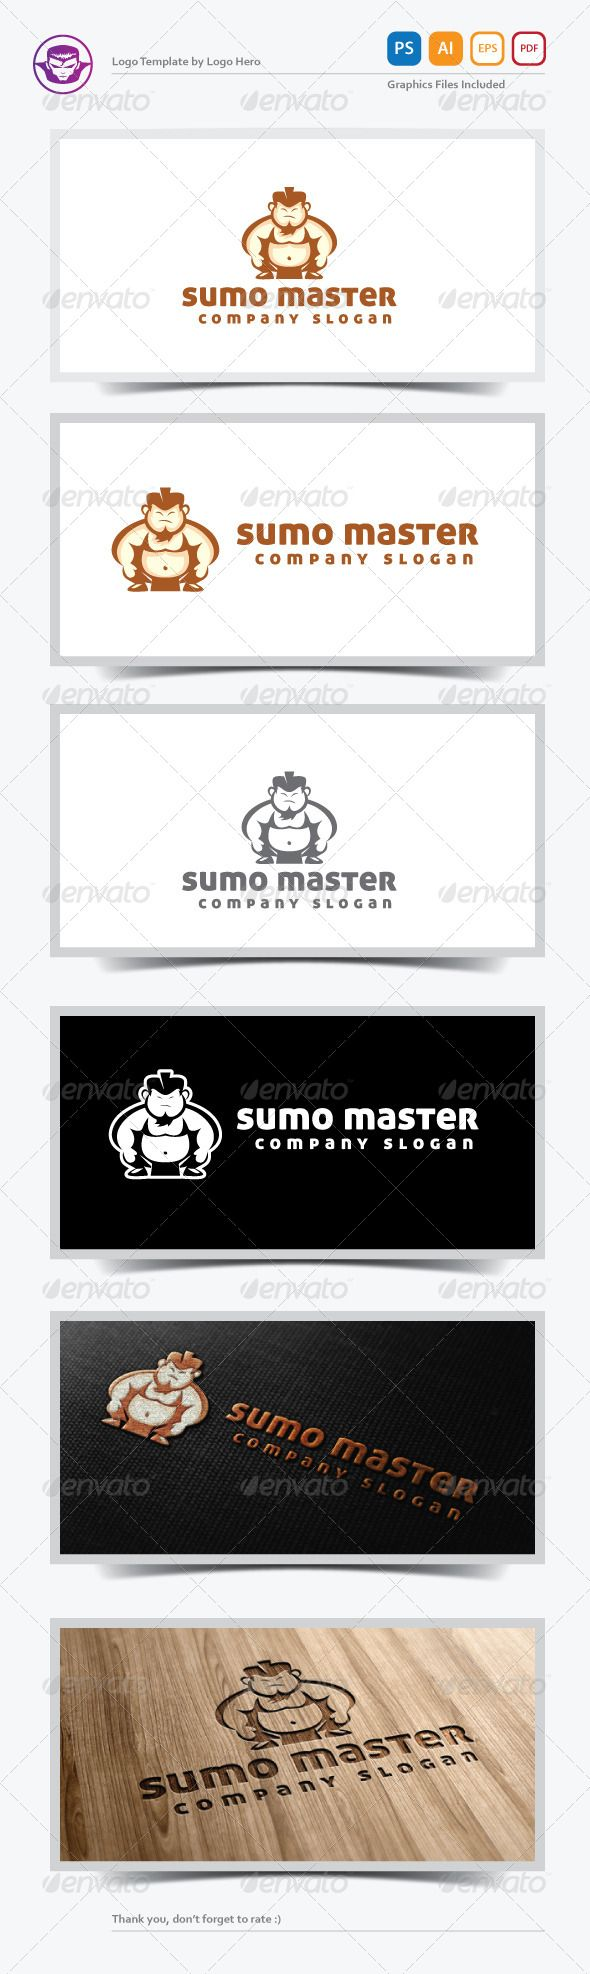 Sumo Master Logo Template ... brand, character, company, fat, fight, host, human, identity, illustrative, illustrator, japan, logo, man, martial art, mascot, people, re sizable, sport, strong, sumo, traditional, vector, web